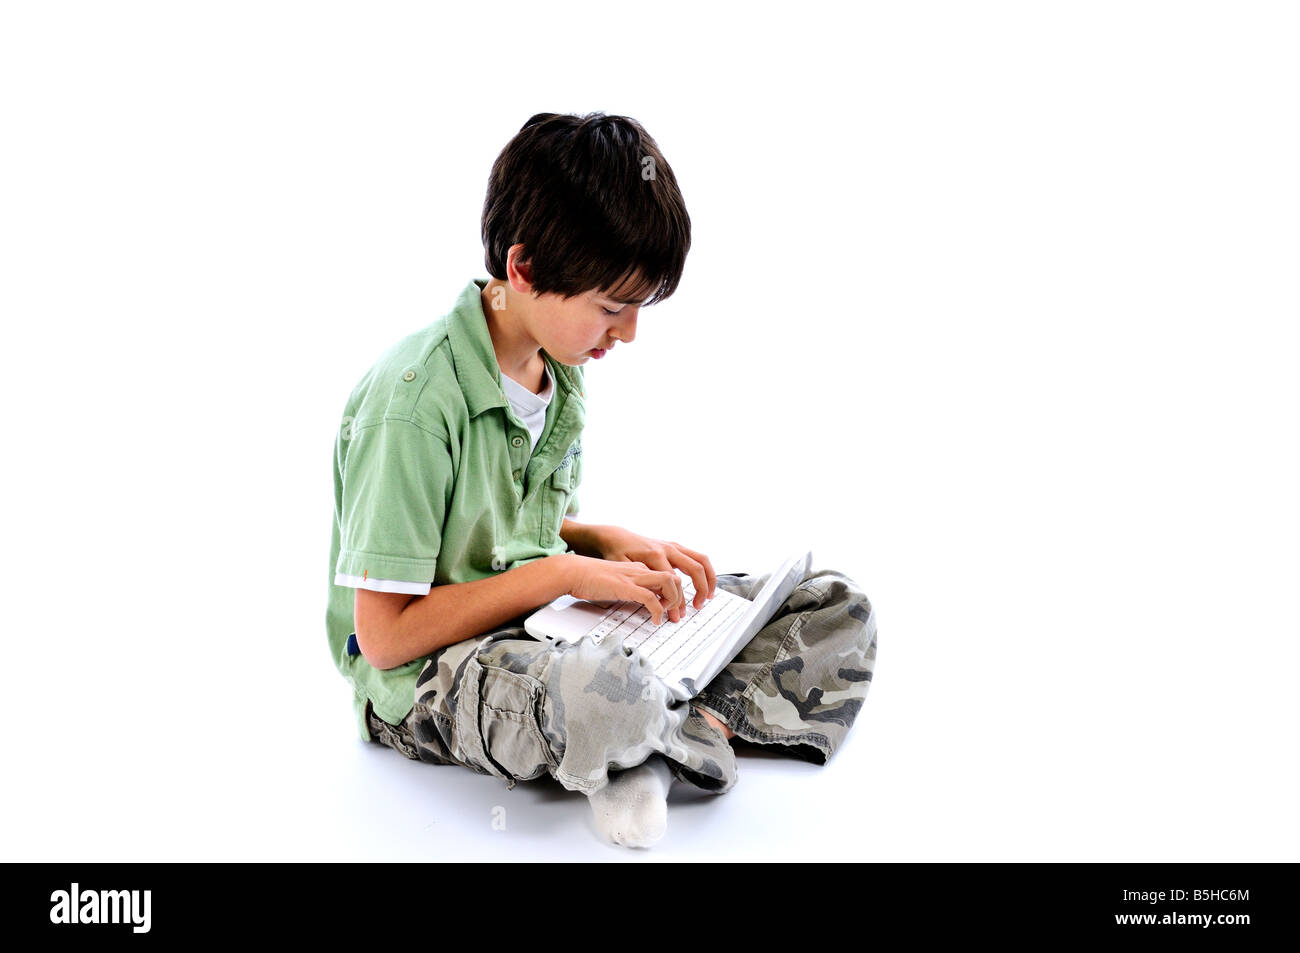 Young boy using an ASUS Eee PC laptop - Stock Image